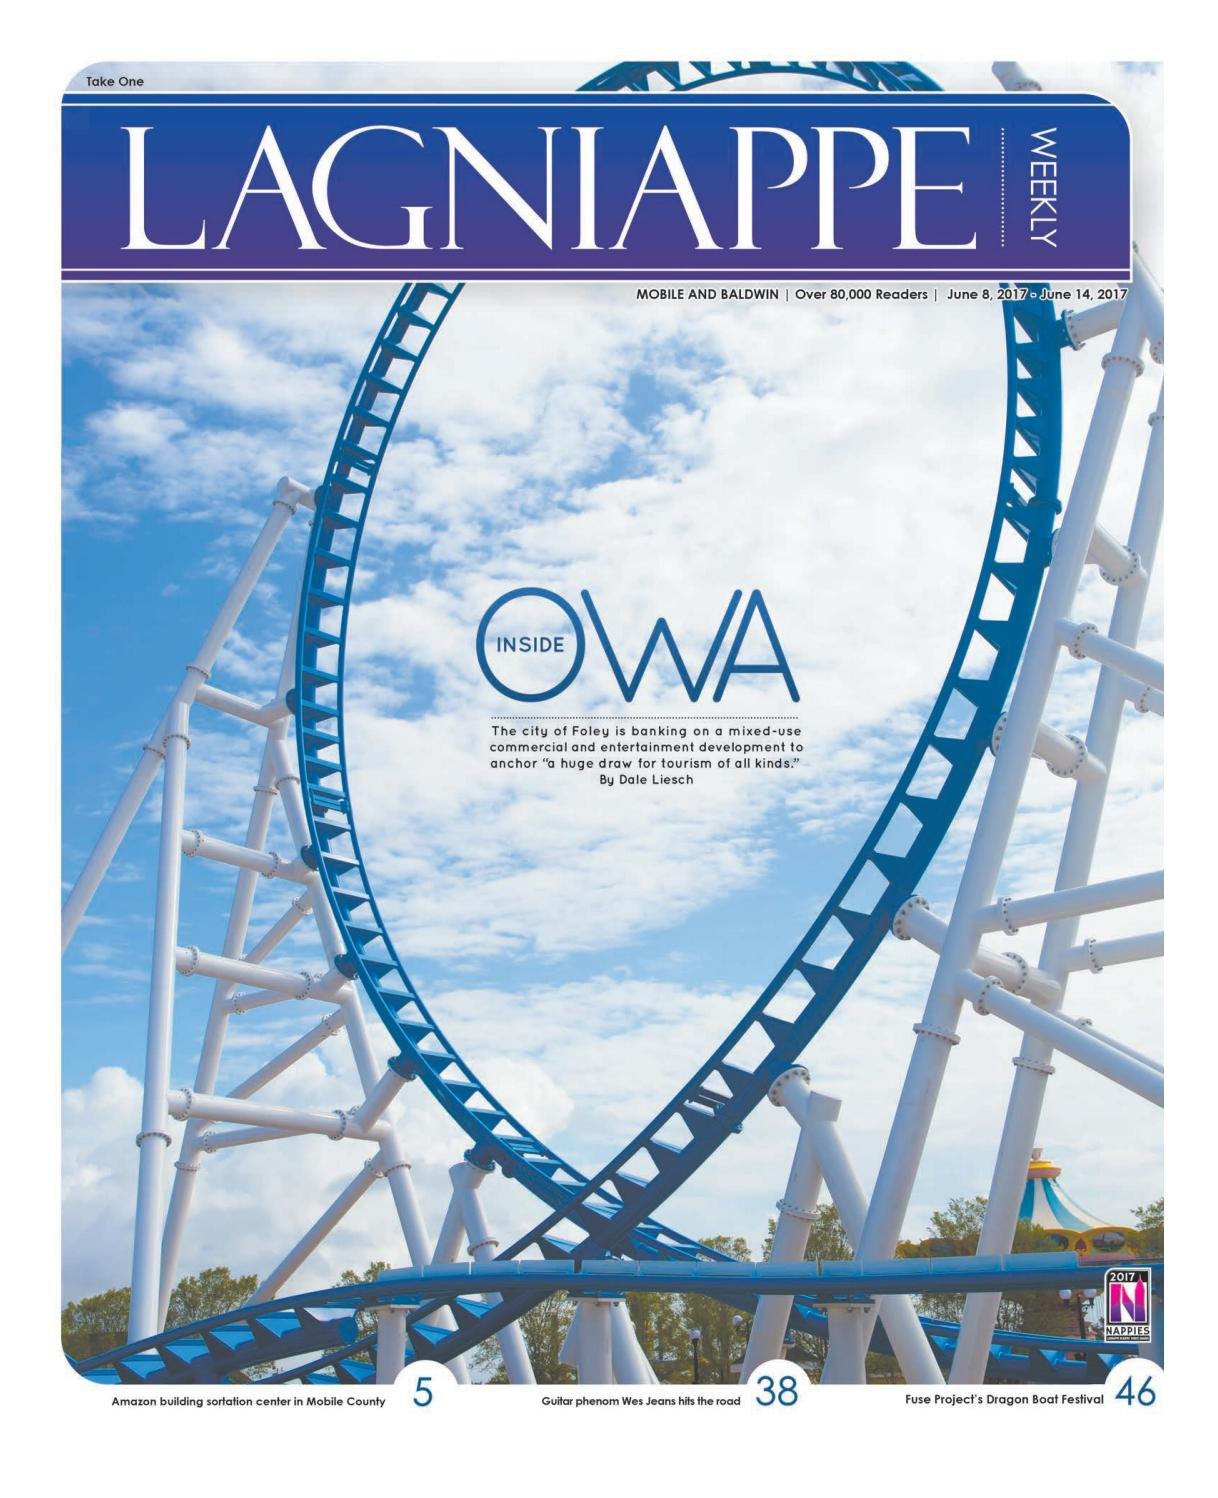 c29f42f6a8e9b Lagniappe: June 8 - 14, 2017 by Lagniappe - issuu